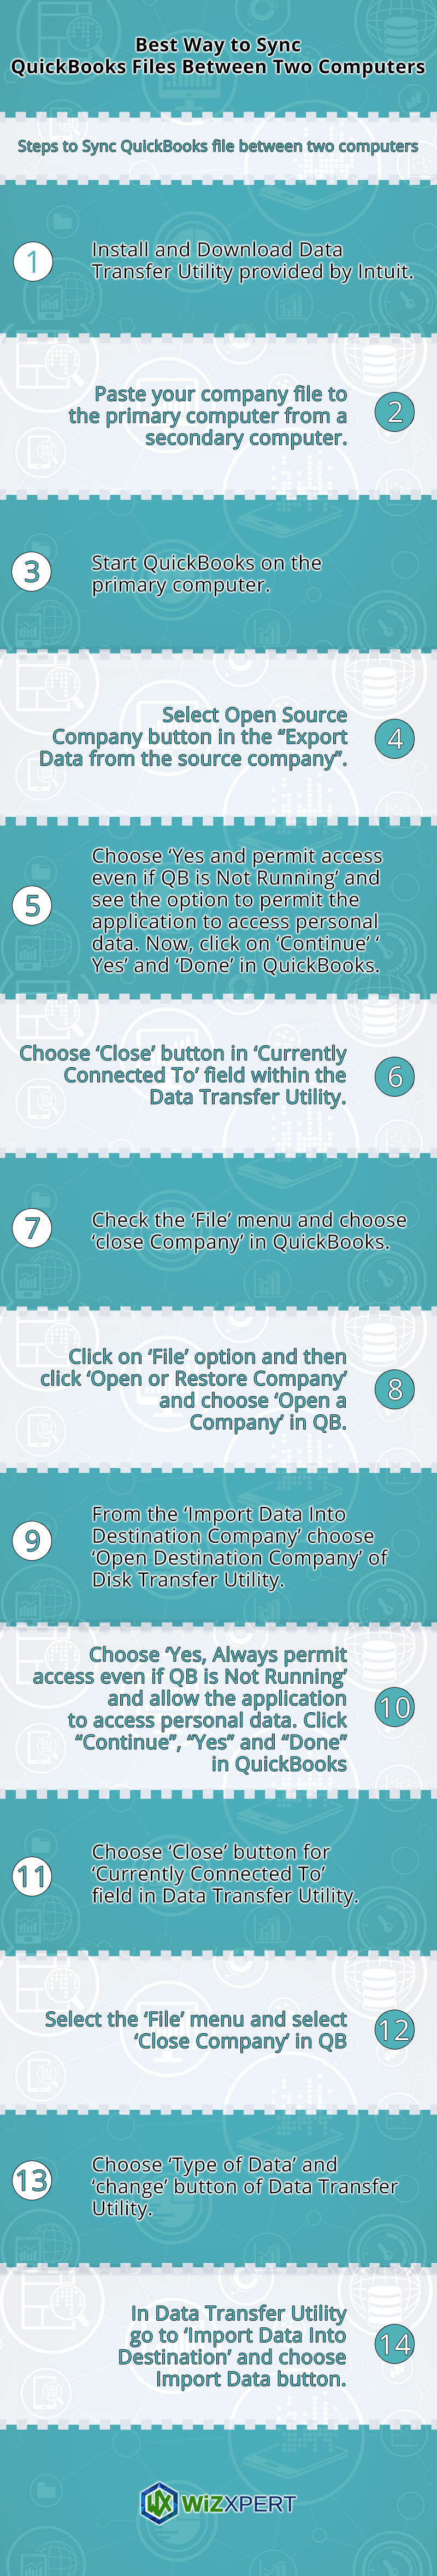 steps to sync QuickBooks files between two computers